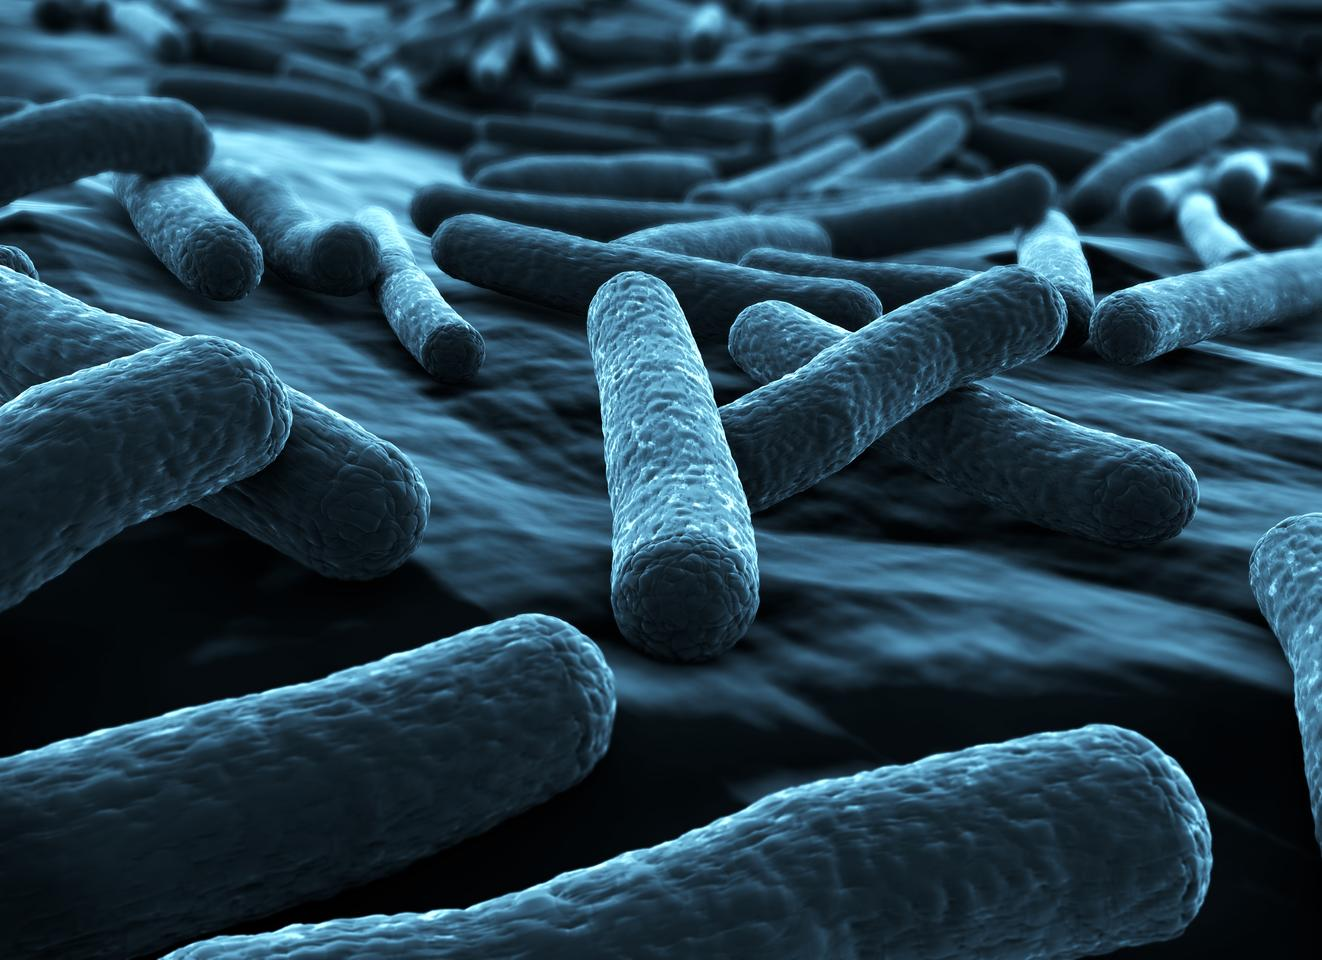 E. coli are reportedly no match for Corning's antimicrobial glass (Image: Shutterstock)